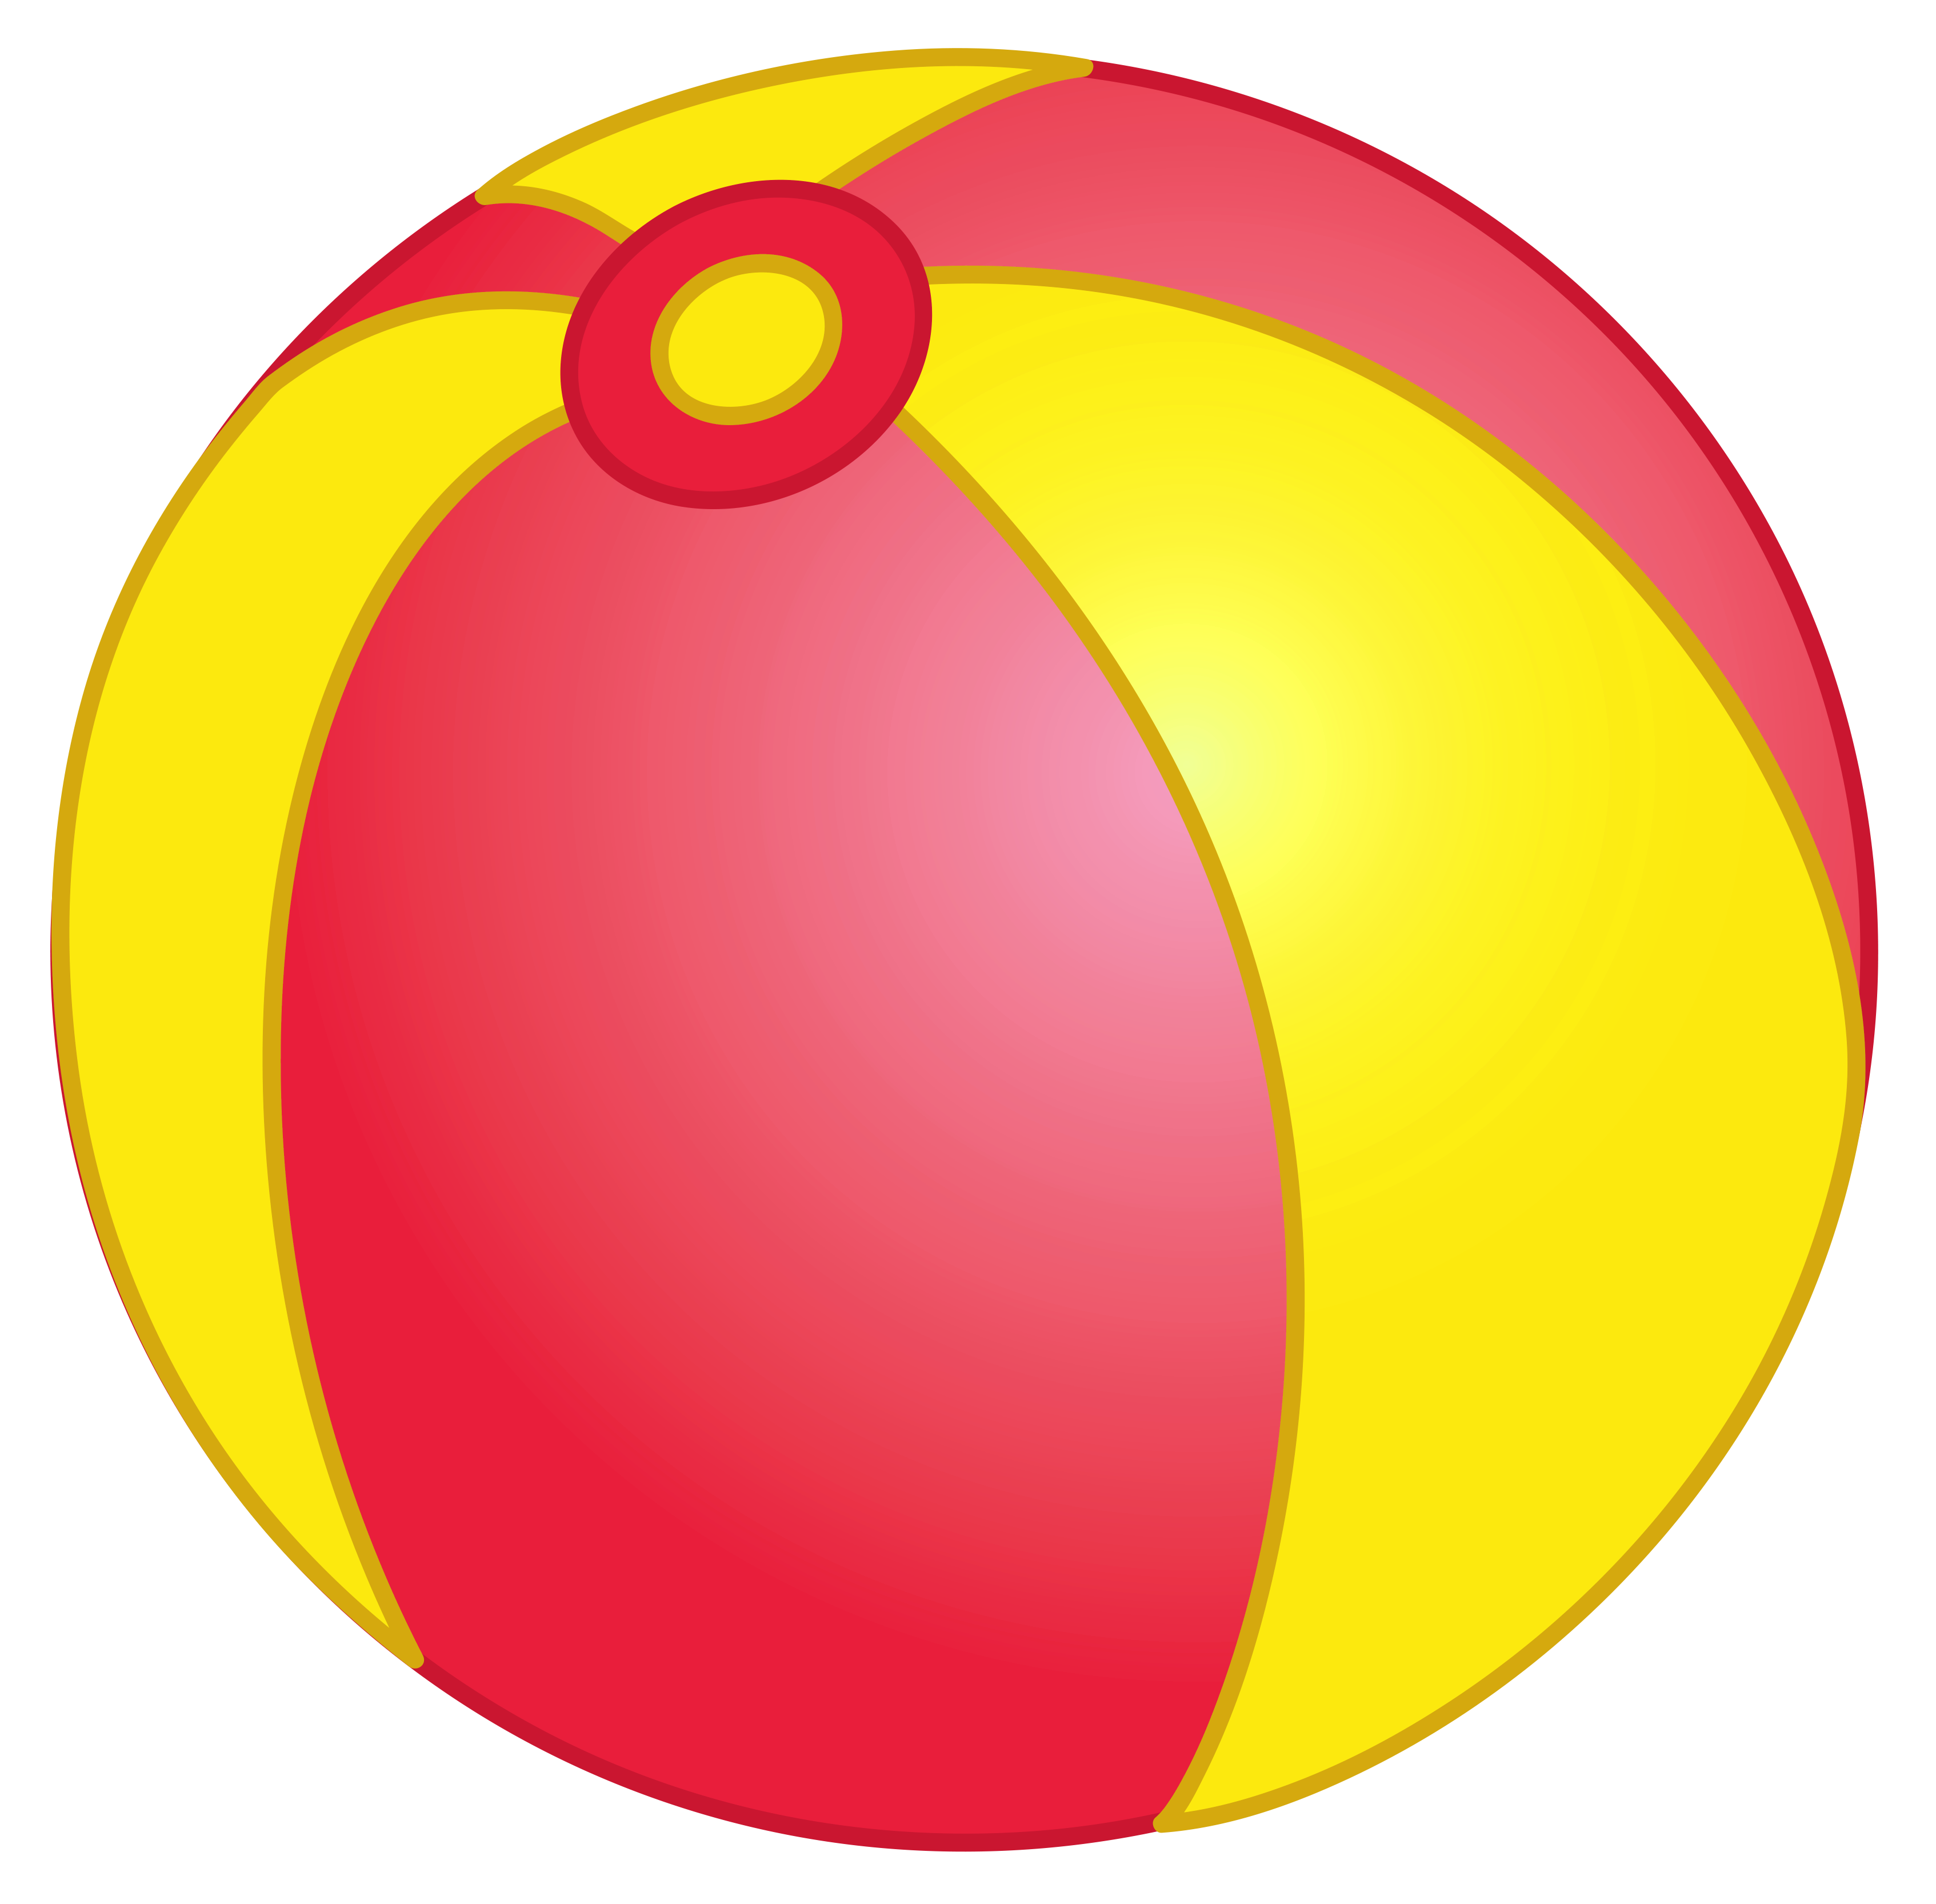 Beach ball png picture. Waves clipart yellow